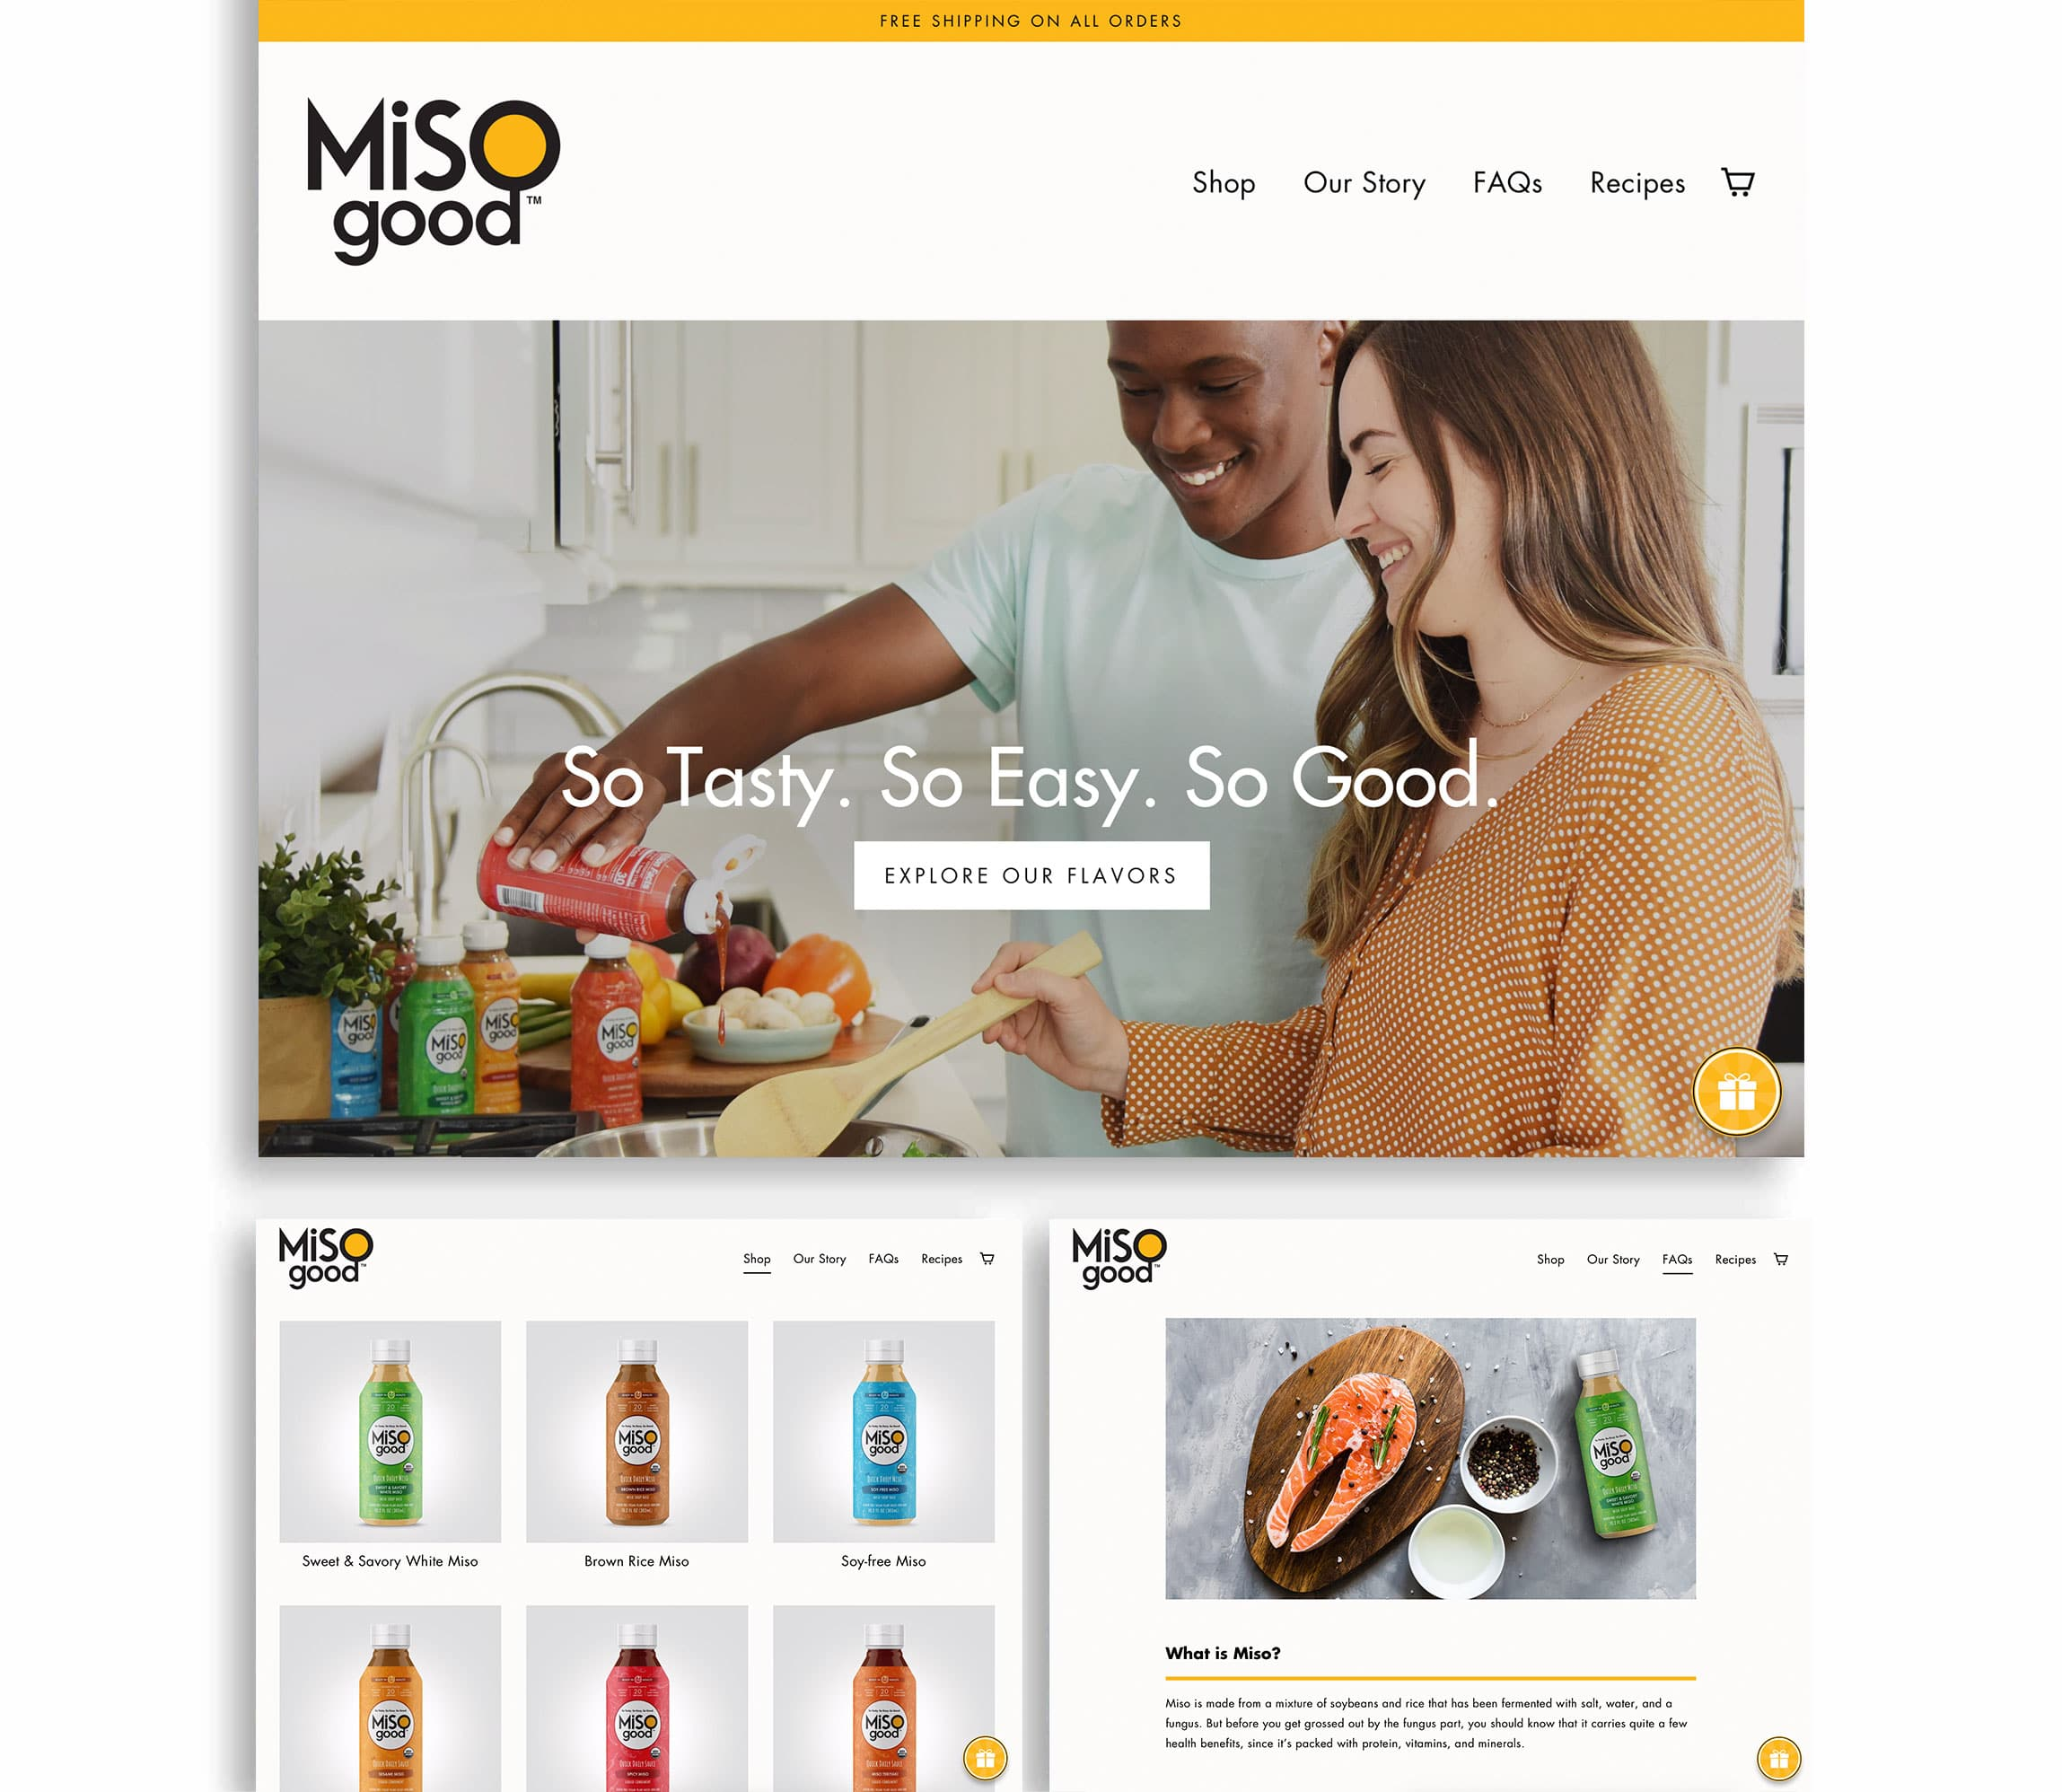 MiSOgood clean website design with hero image of millennial couple cooking together and tagline, So Tasty, So Easy, So Good.